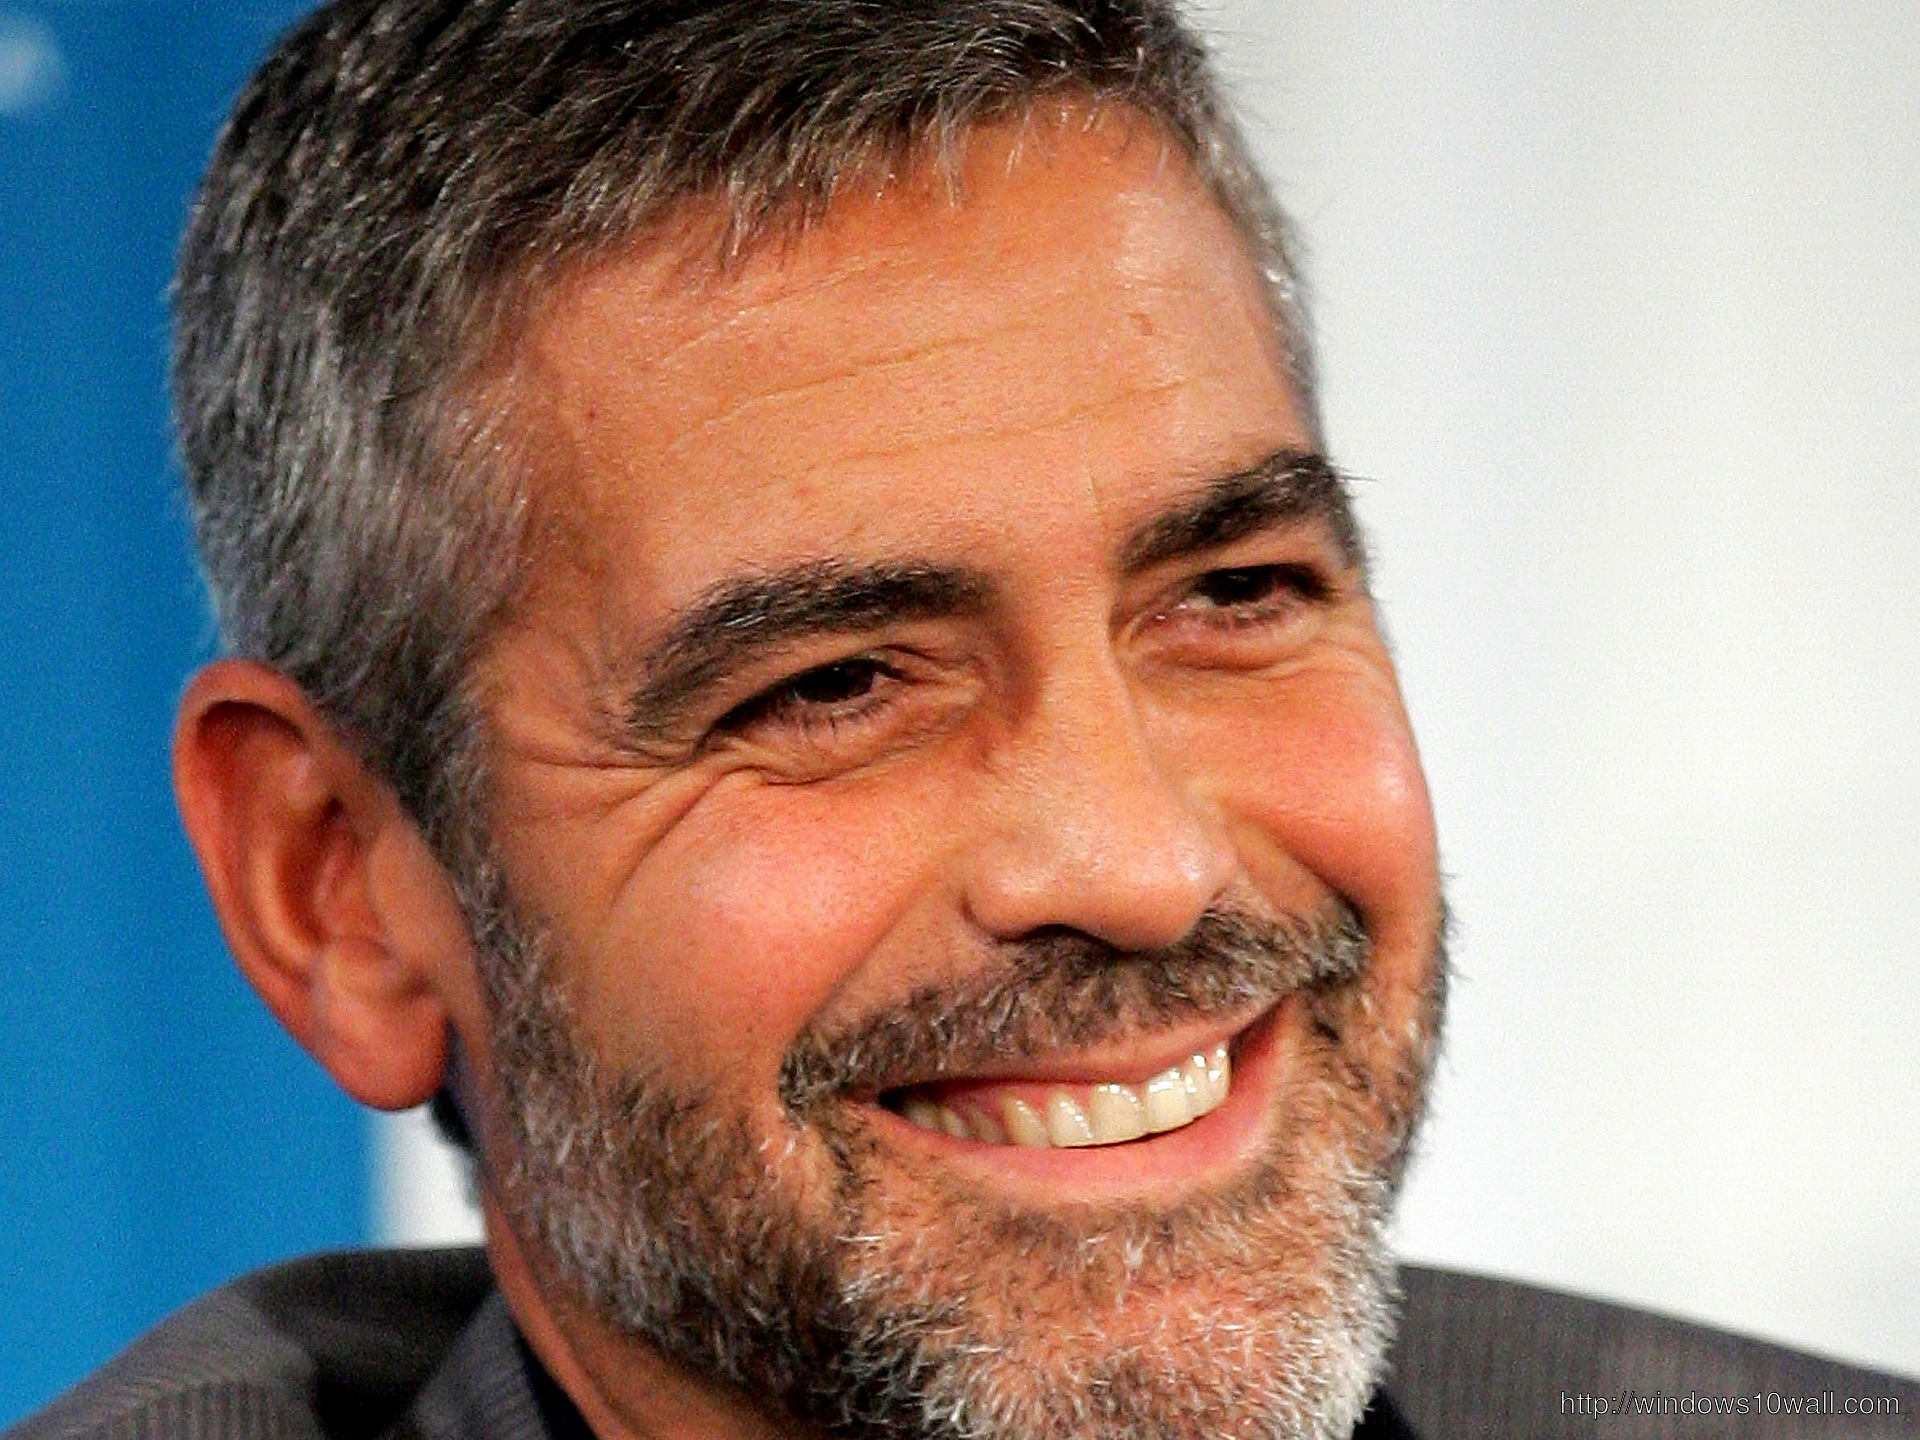 George Clooney Smiling Wallpaper